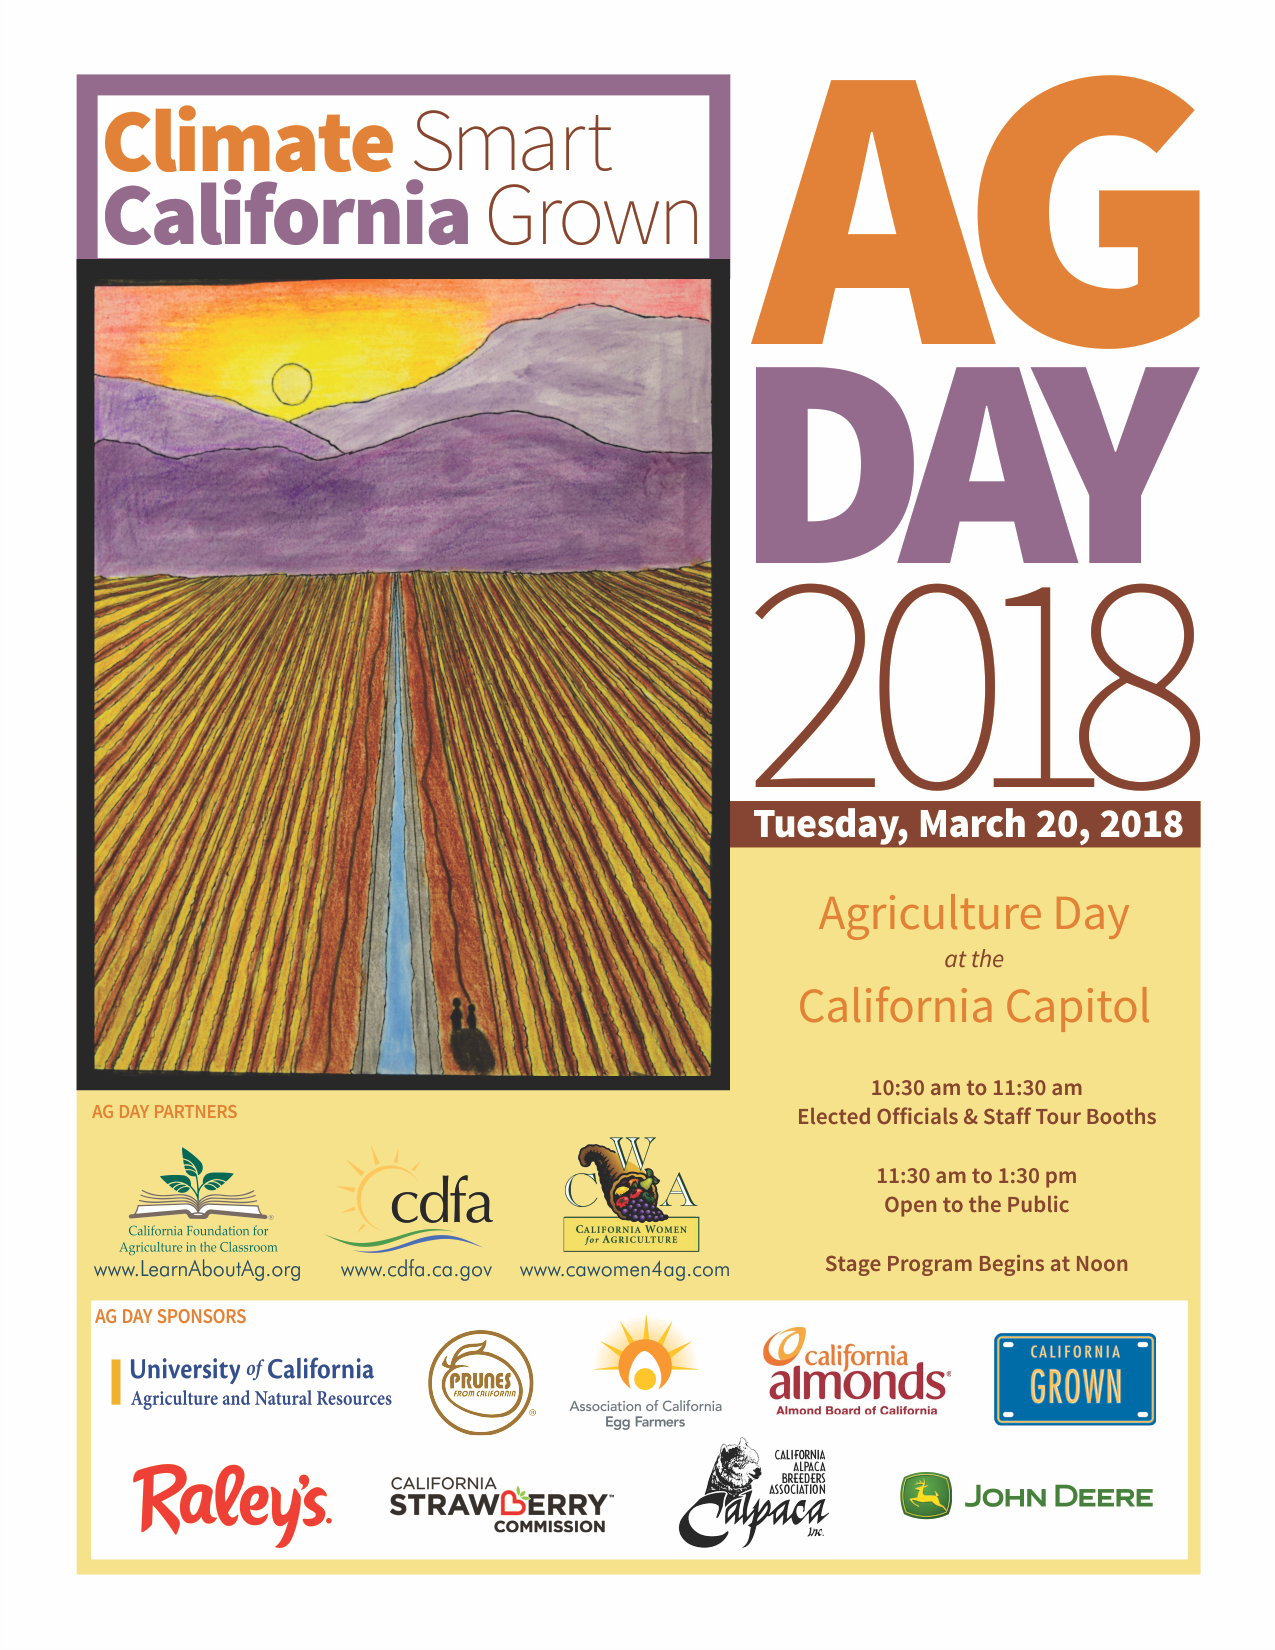 Cdfa california agriculture day march 20 2018 climate smart california grown ag day 2018 flyer buycottarizona Choice Image